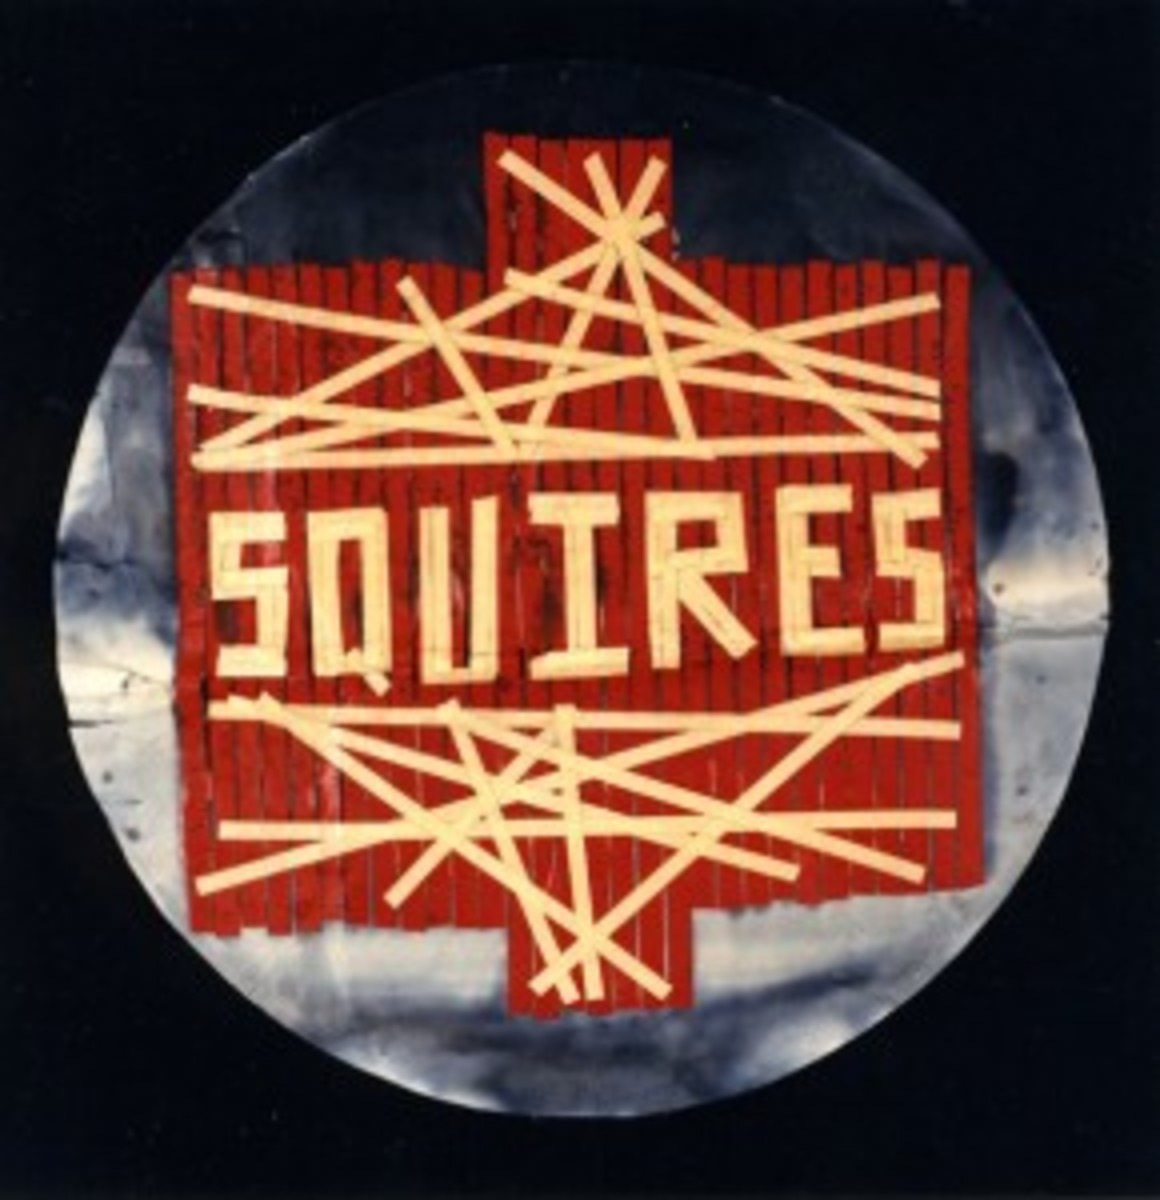 the squires 1965 with neil young bass drum head